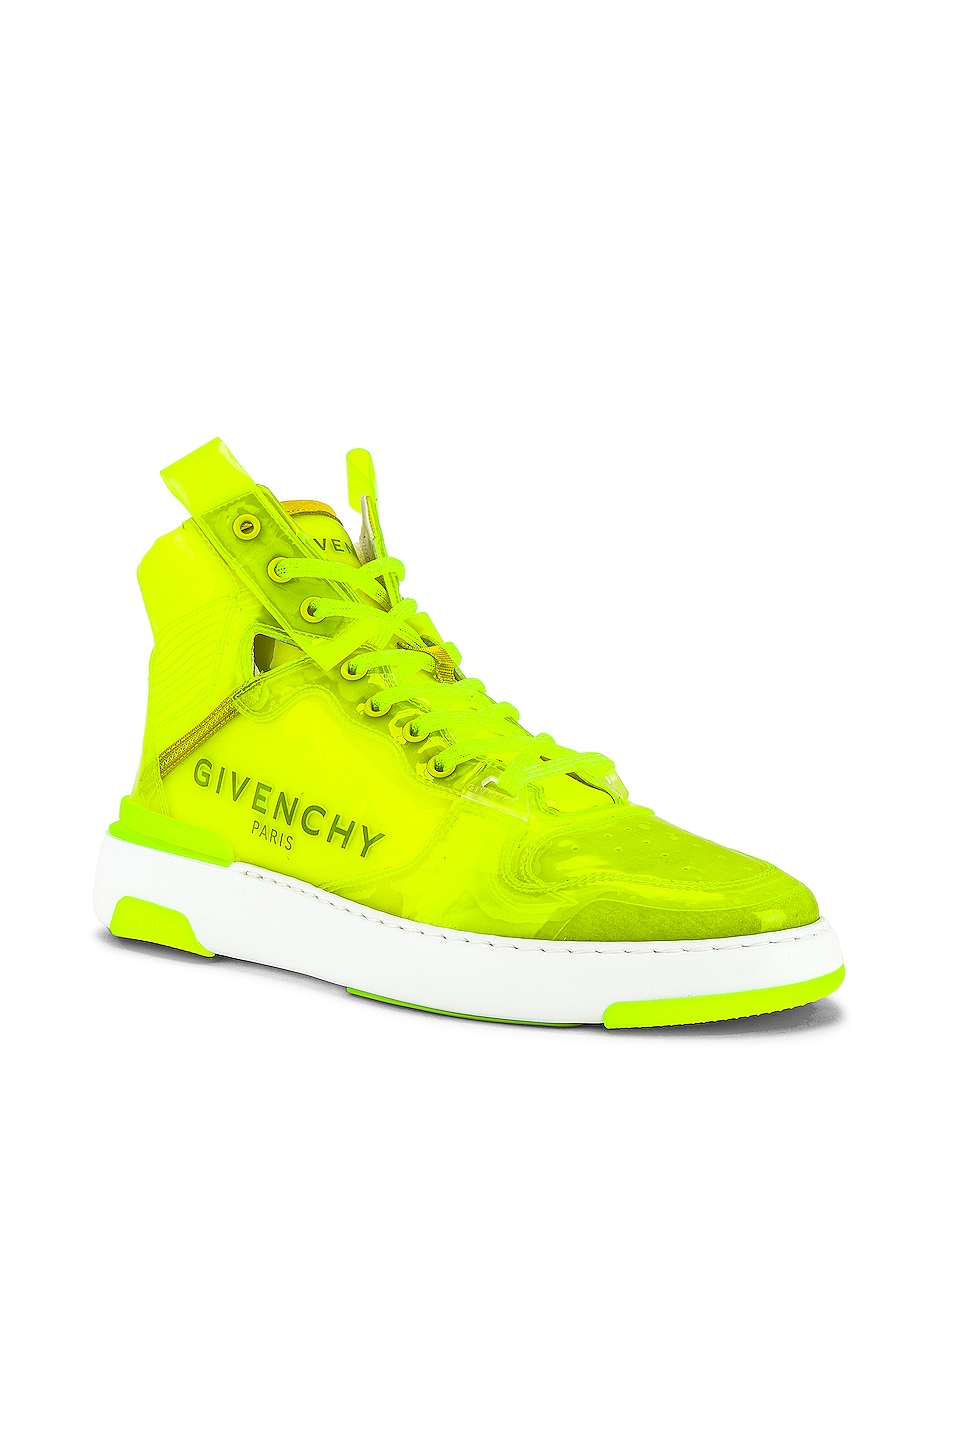 Image 1 of Givenchy Wing Sneaker High With Logo in Fluo Yellow